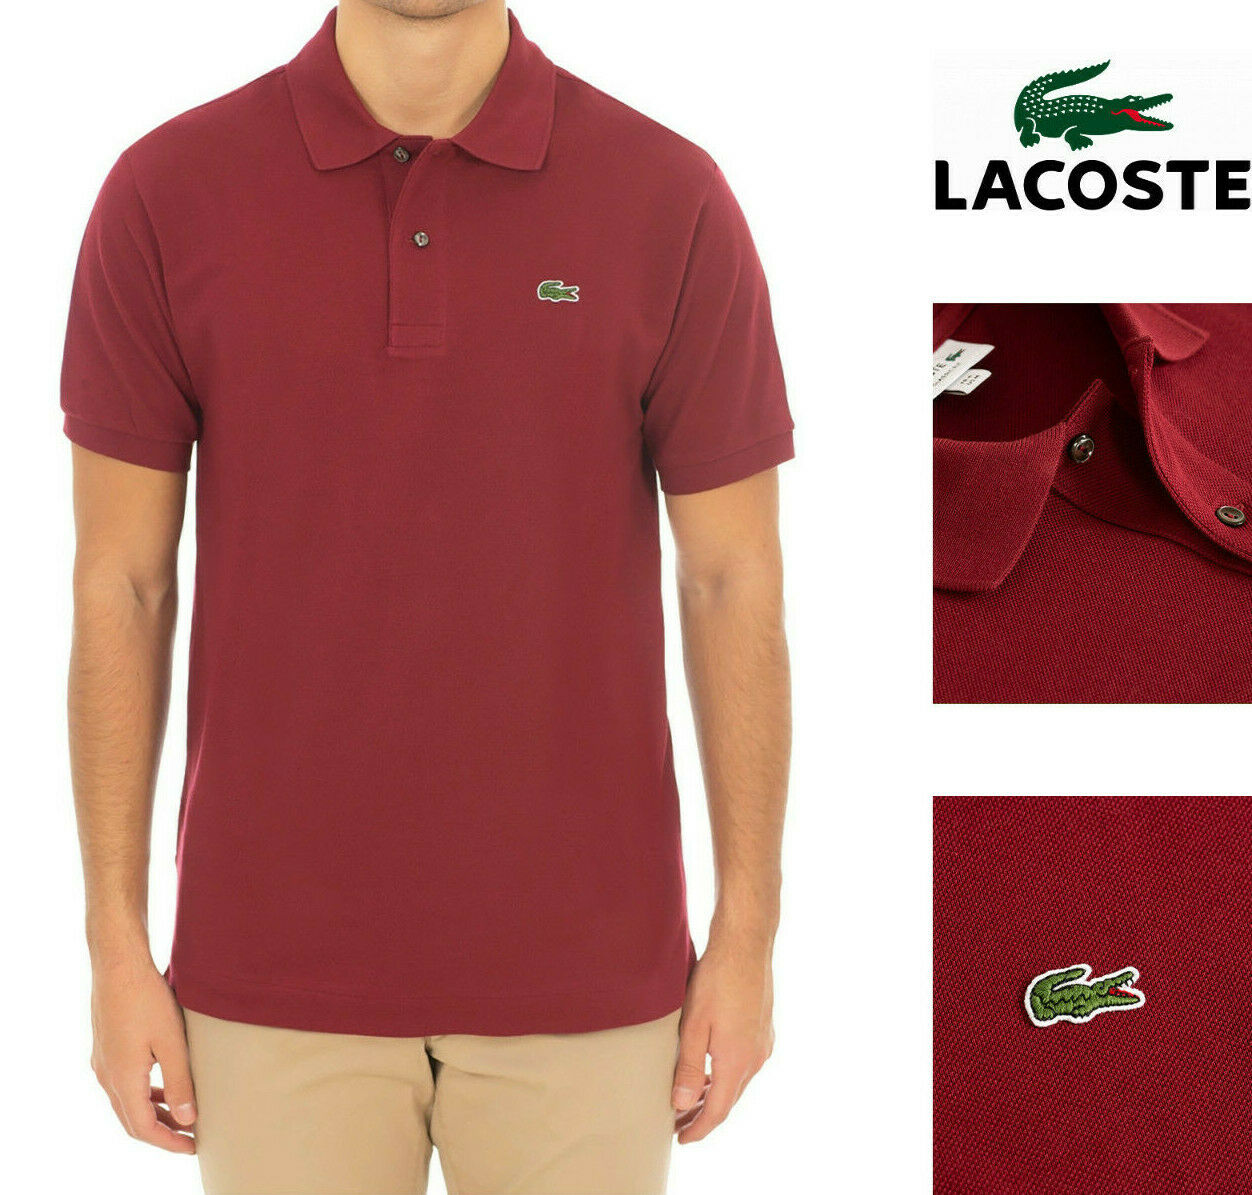 4e7477bae8 Mens Lacoste Polo Shirt Dark Classic Fit 100% Cotton NEW Pinot Red ...